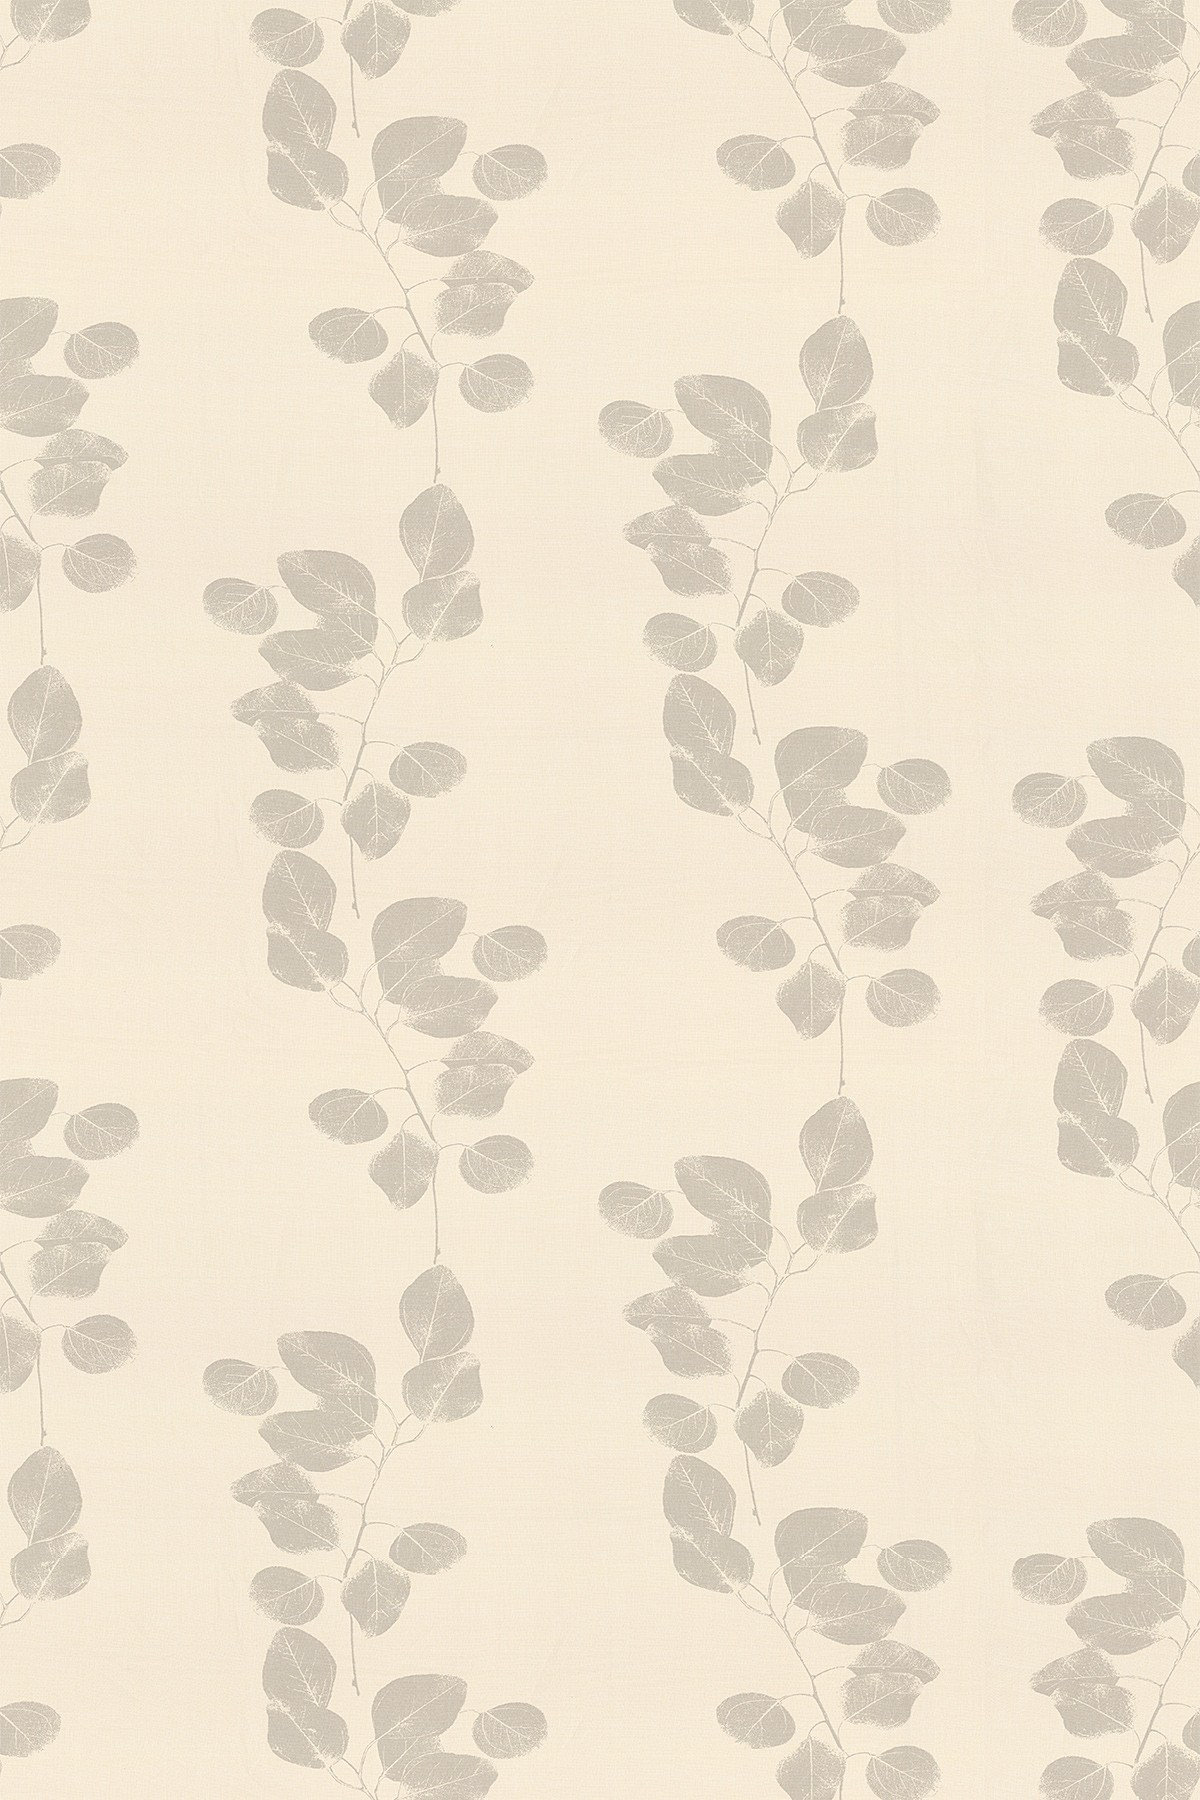 Image of Jocelyn Warner Fabric Leaf, JWF-203